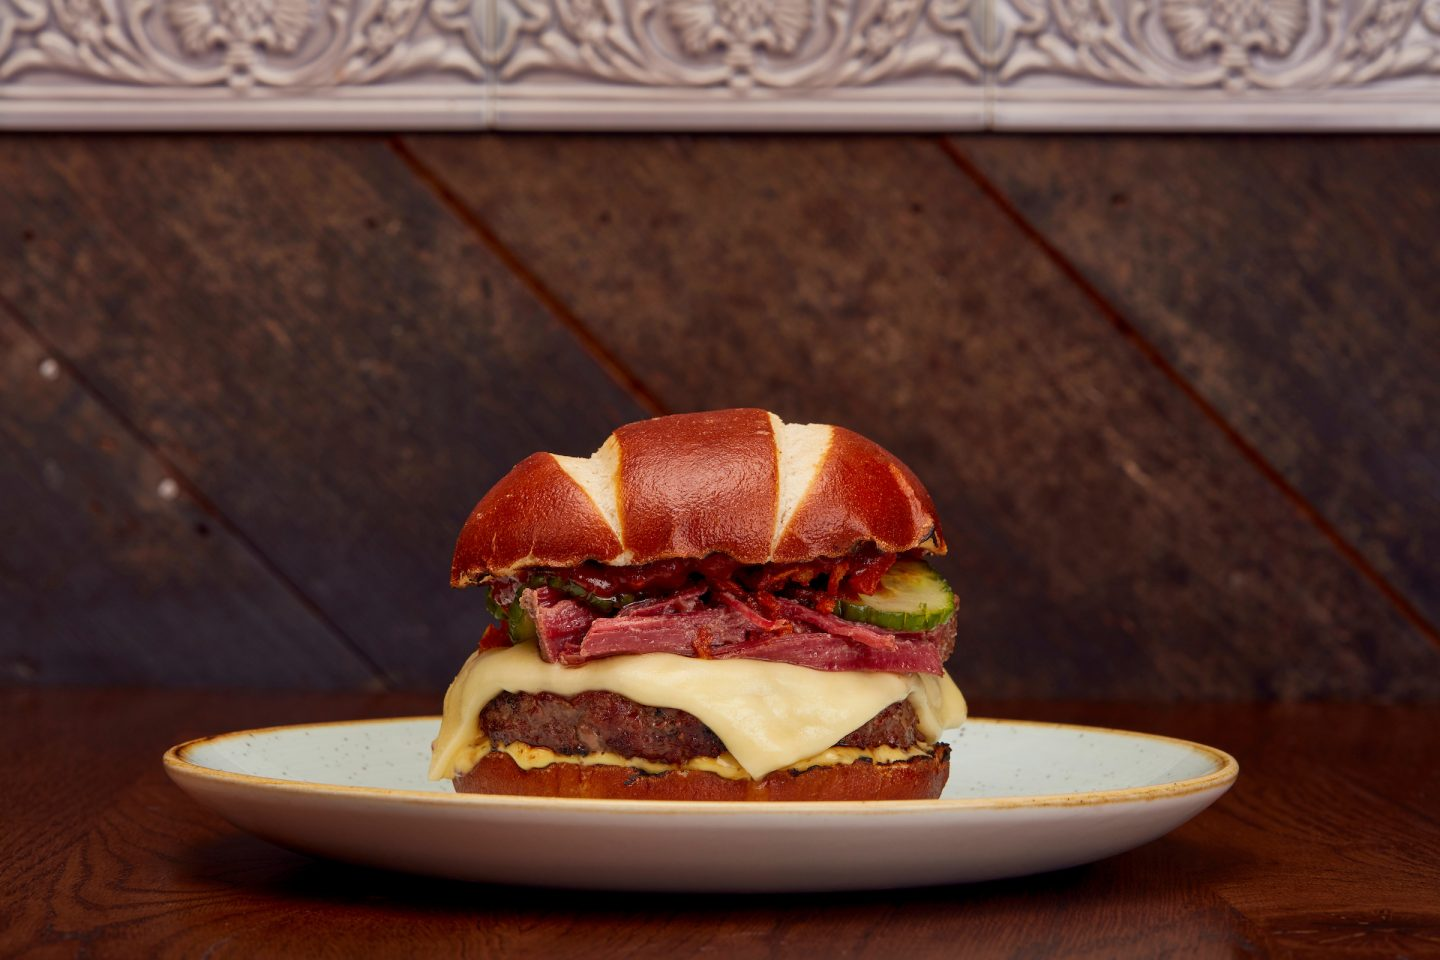 How to get a GBK Brisket Burger for free?